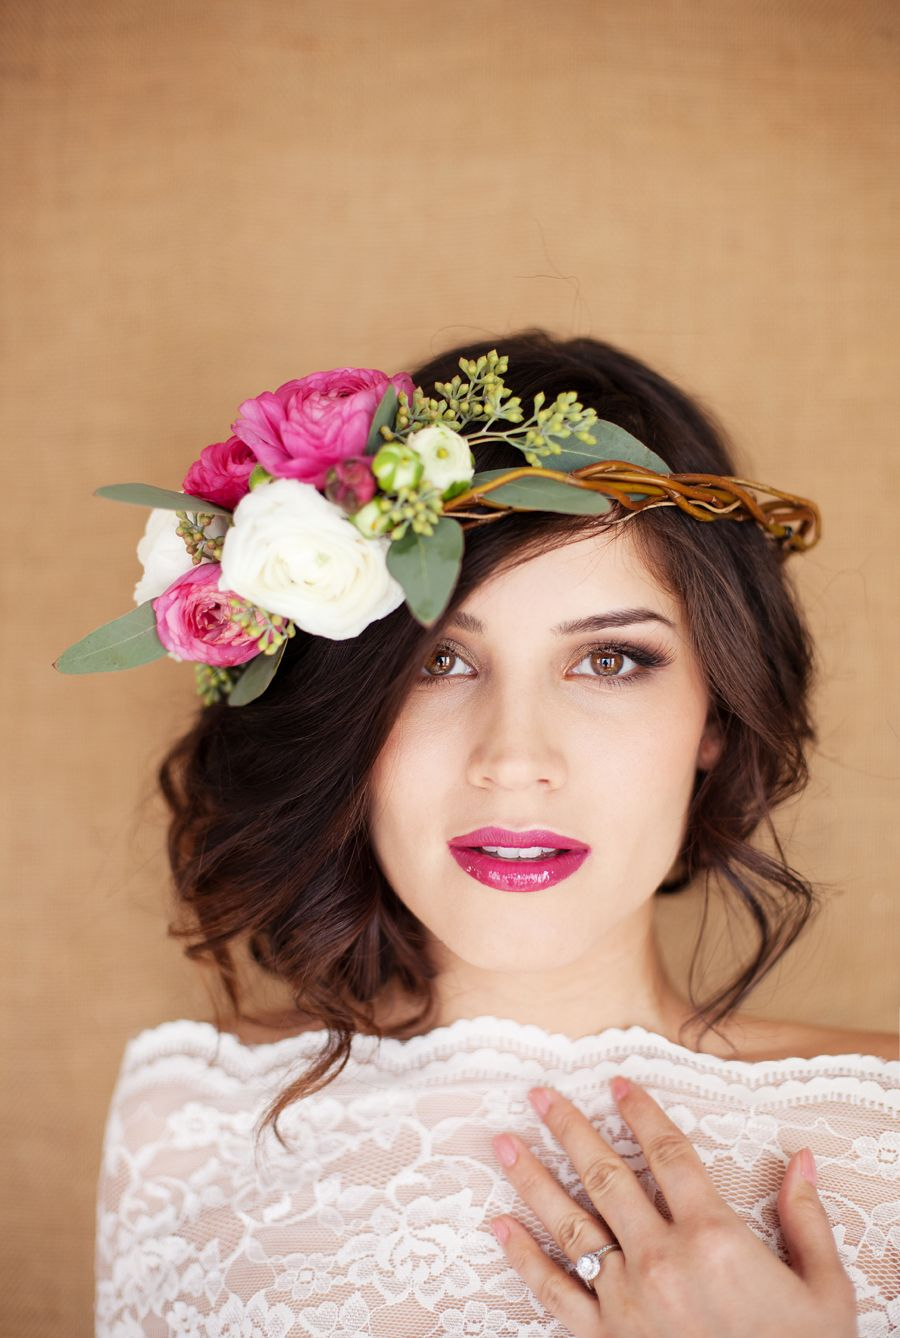 2014 Wedding Trends | Floral Crowns | Tips for wearing fresh flowers on your wedding day